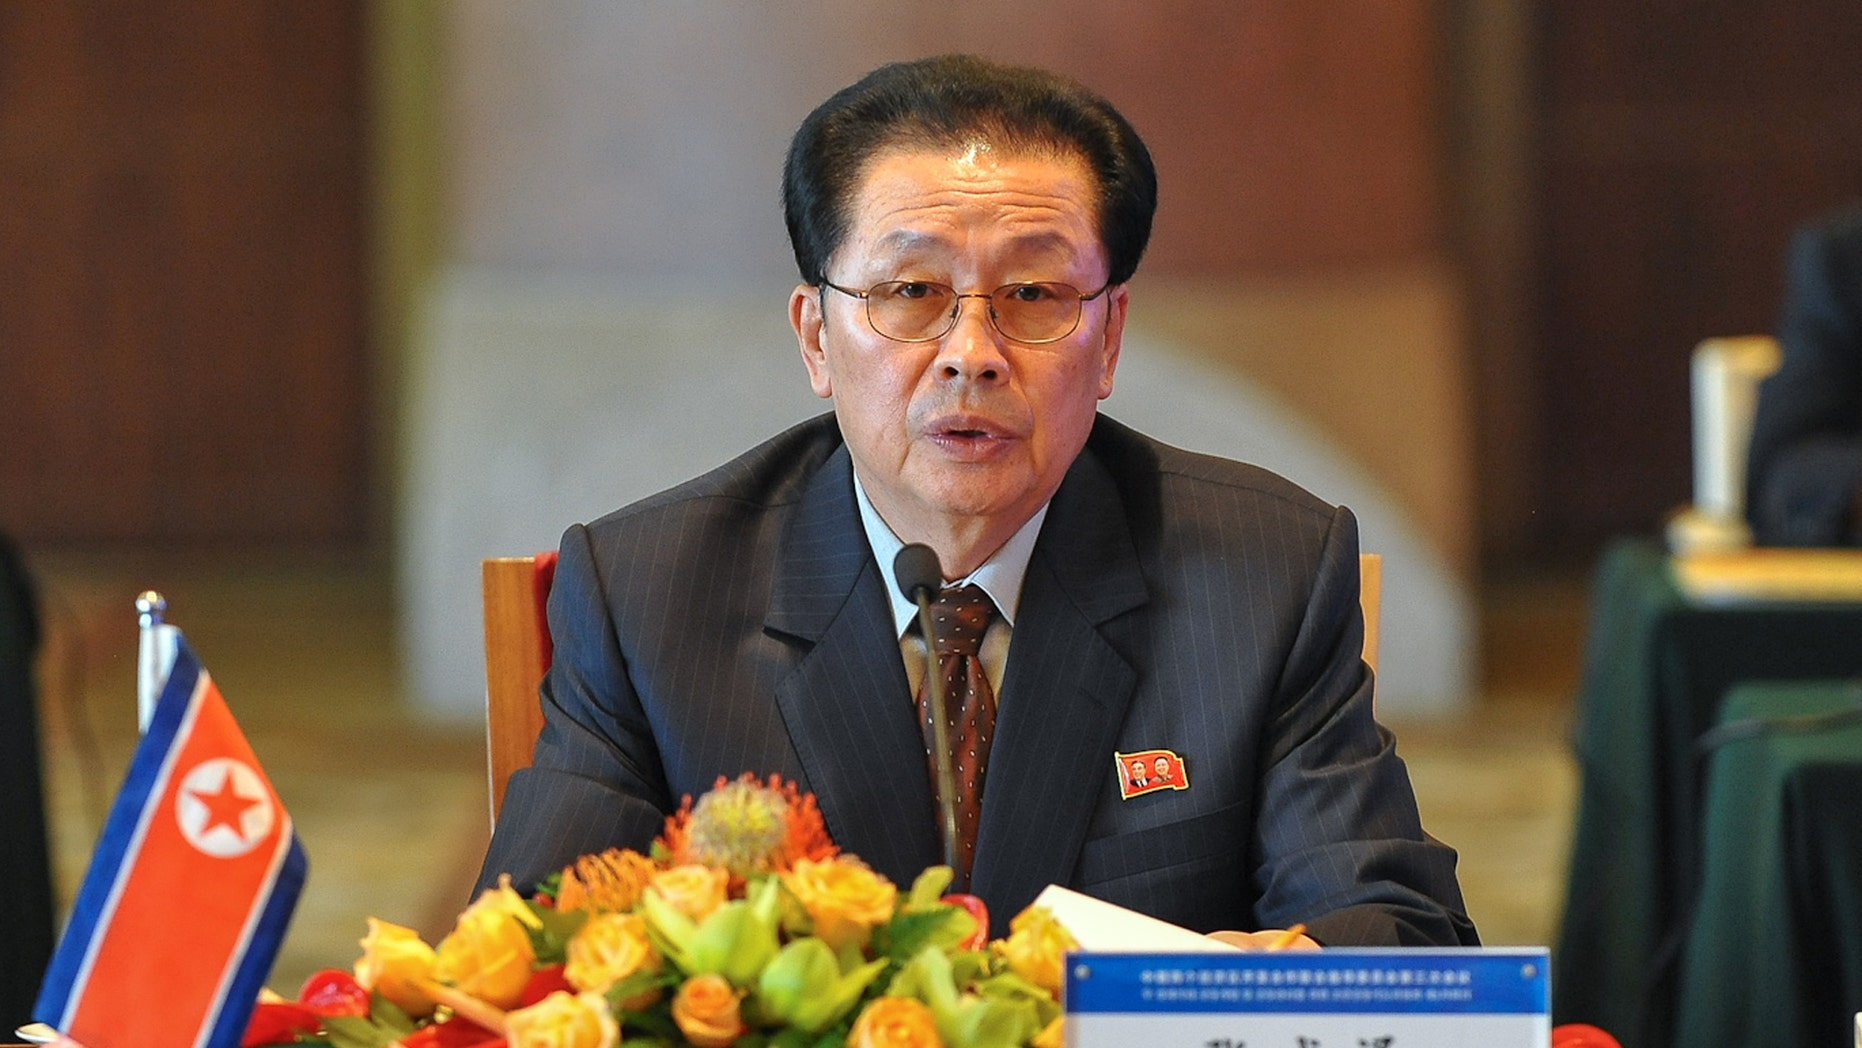 In this Tuesday, Aug. 14, 2012 file photo provided by China's Xinhua News Agency, Jang Song Thaek, North Korea's vice chairman of the powerful National Defense Commission, attends the third meeting on developing the economic zones in North Korea, in Beijing. Two South Korean lawmakers say they were told by intelligence officials that two associates of North Korean leader Kim Jong Un's powerful uncle Jang were executed last month. They say the uncle has not been seen in public since then and may have been dismissed. There was no way to independently confirm the report about Jang. (AP Photo/Xinhua, Li Xin, File)  NO SALES